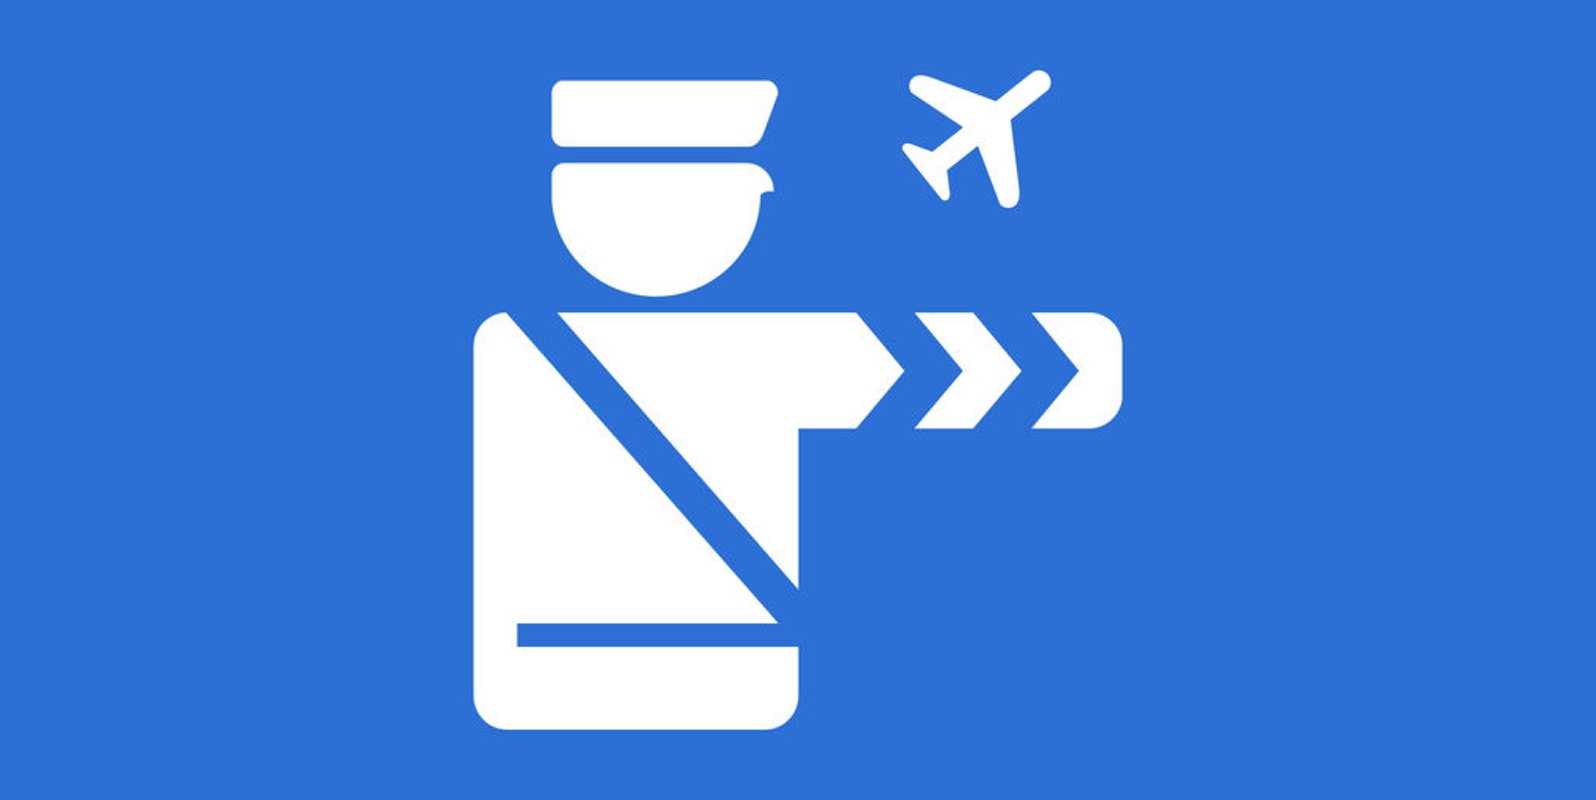 How one app helped me avoid hours in line at the airport